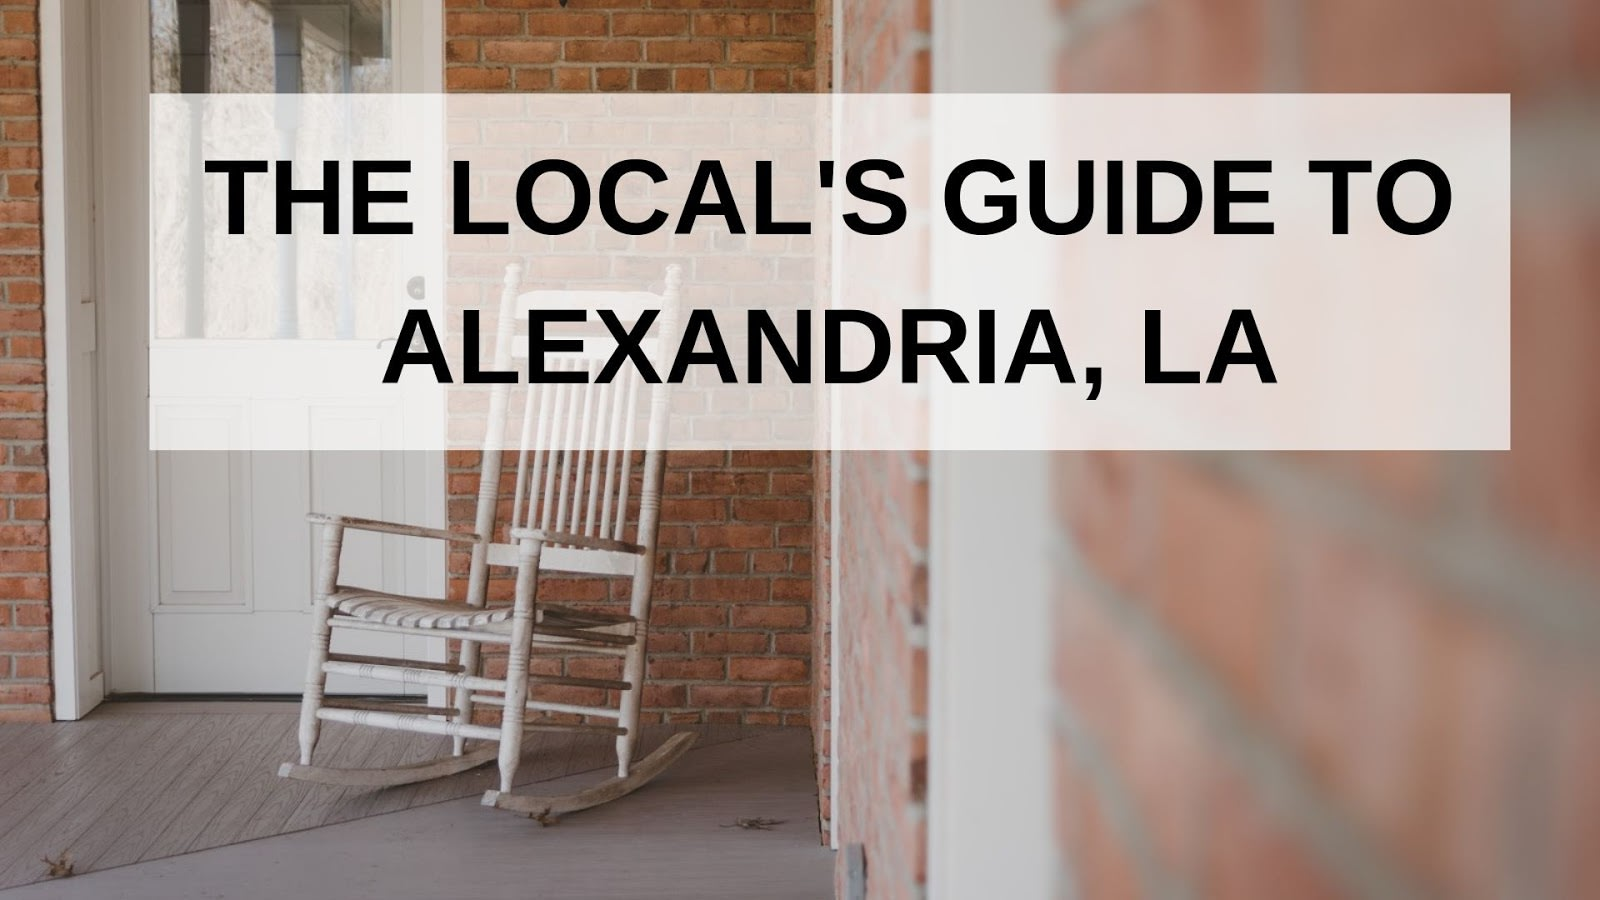 The Local's Guide to Alexandria, LA